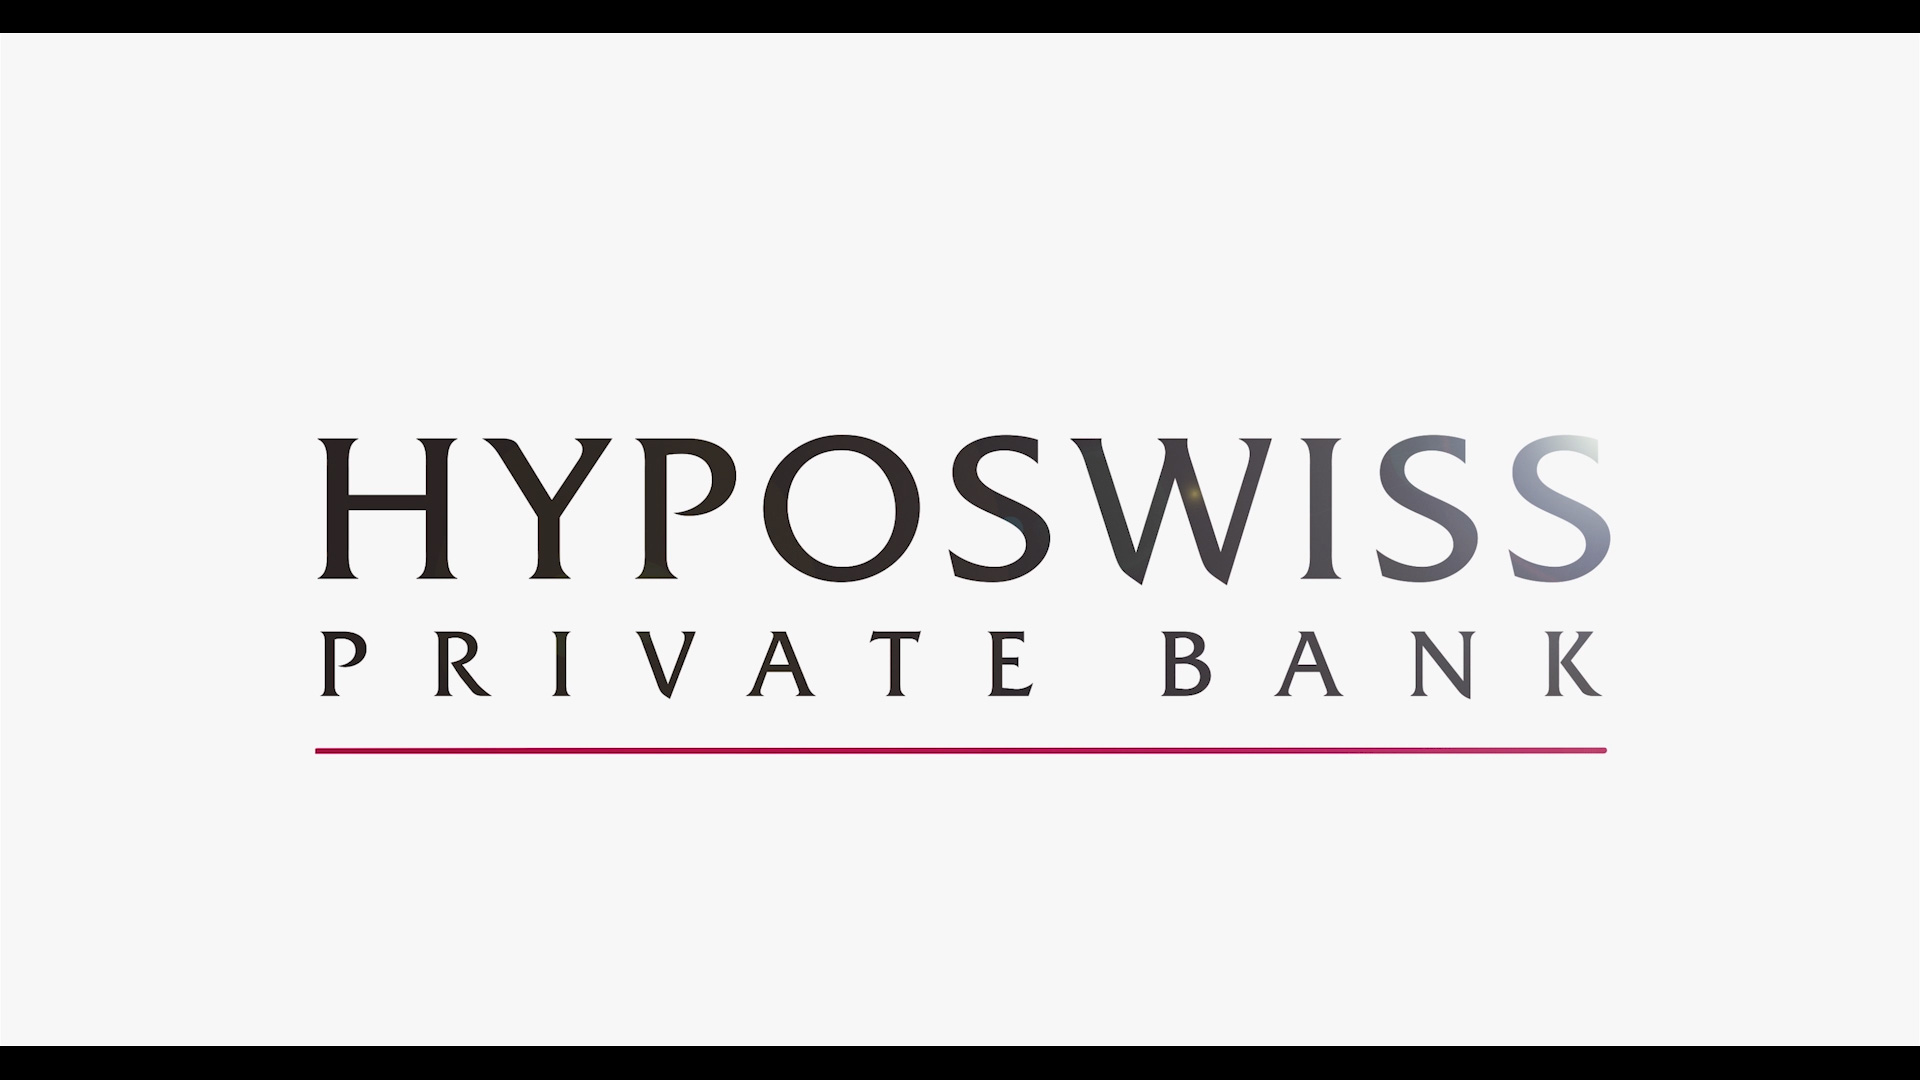 Film-Hyposwiss_Full-HD-1920x1080